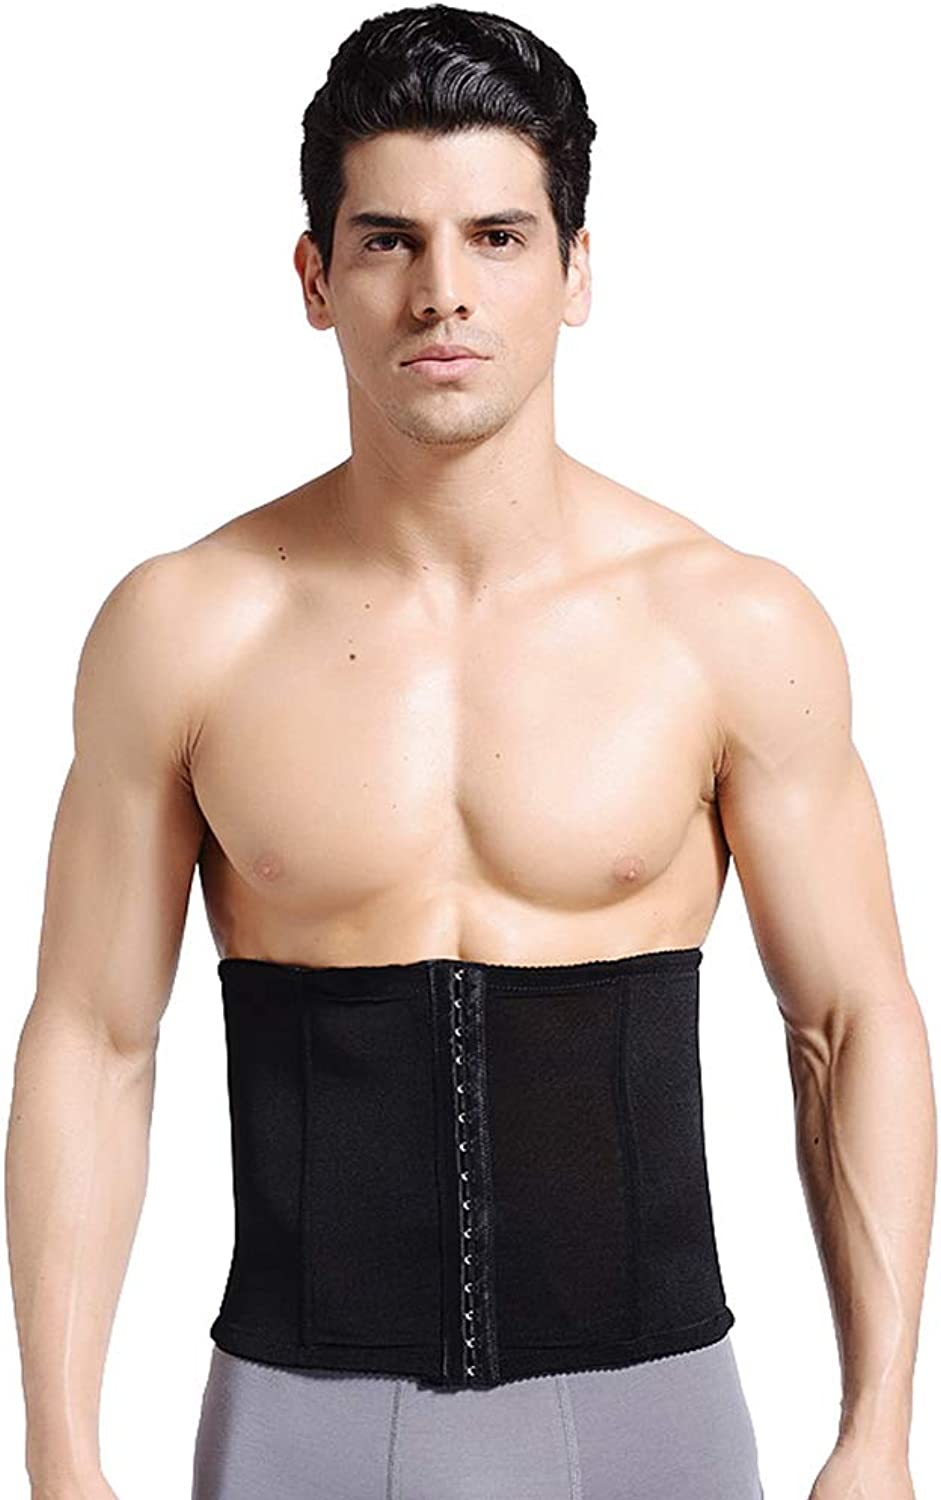 Men's Abdomen with A Waist and Breathable Body Sculpting Abdomen Beer Belly Thin Waist Invisible Abdomen Girdle